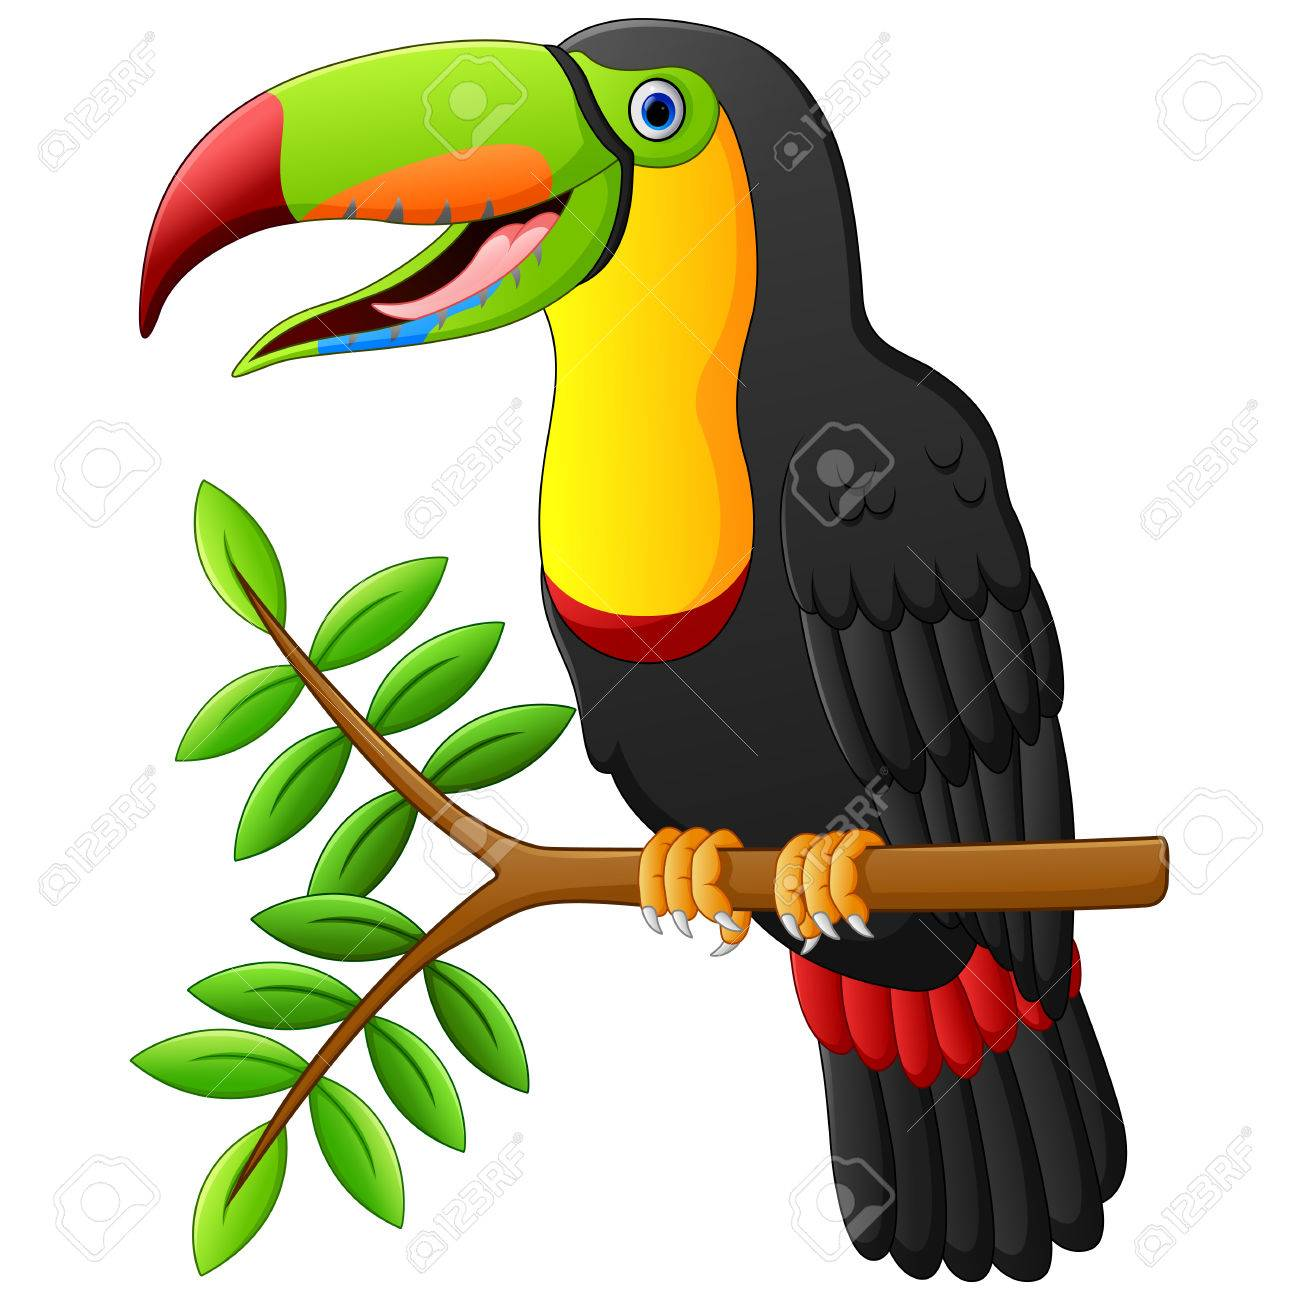 toucan cartoon sitting on the branch - 56383052